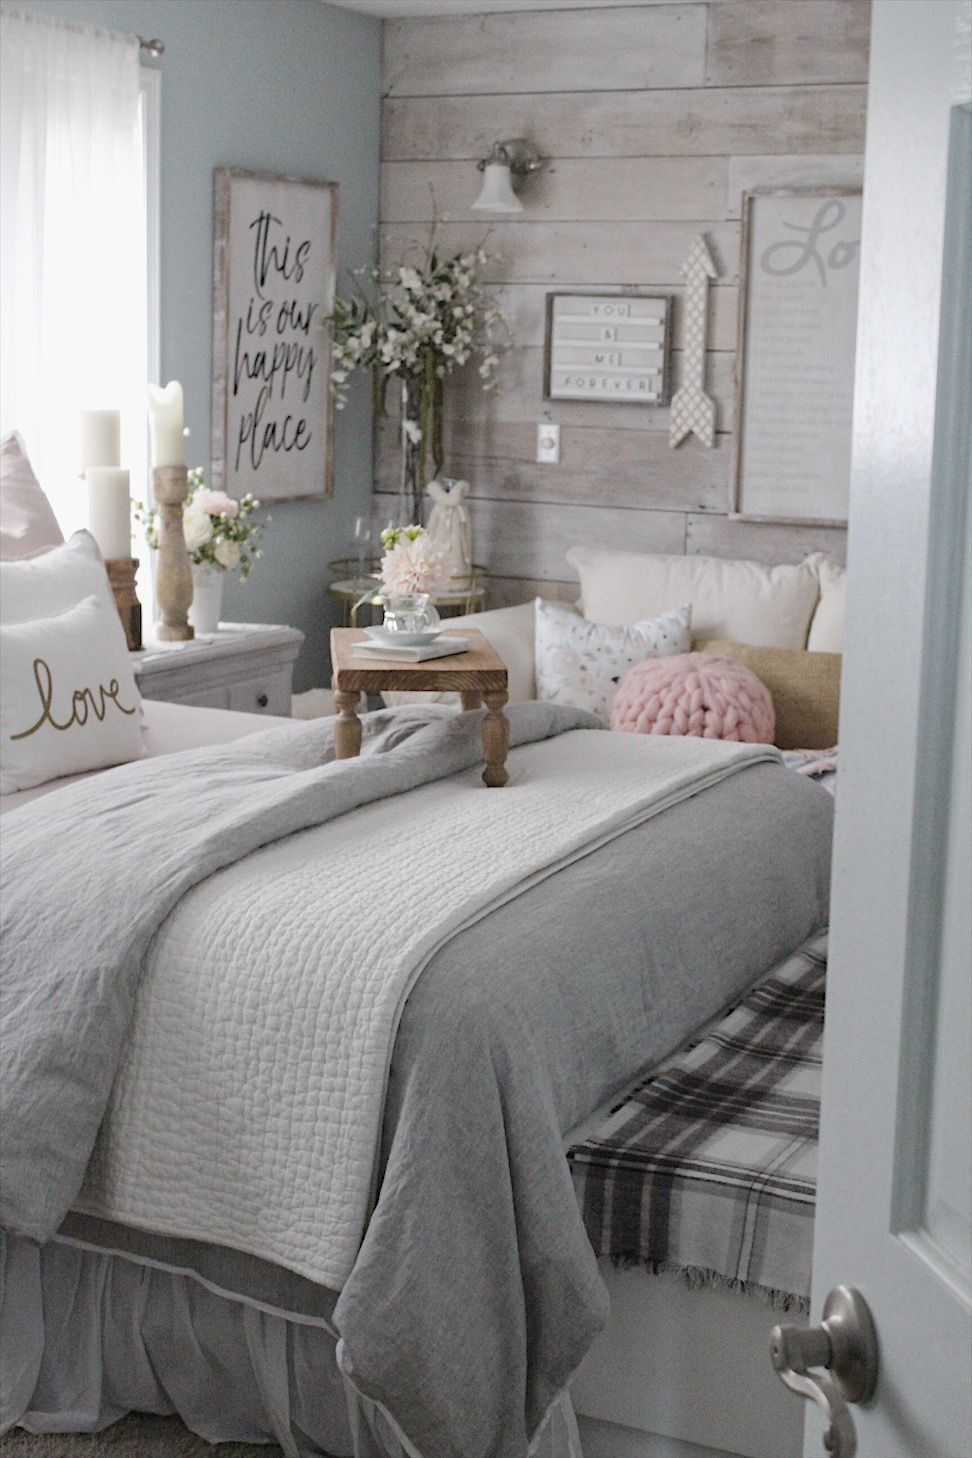 A Roundup Of Spring Changes With Images Remodel Bedroom Small